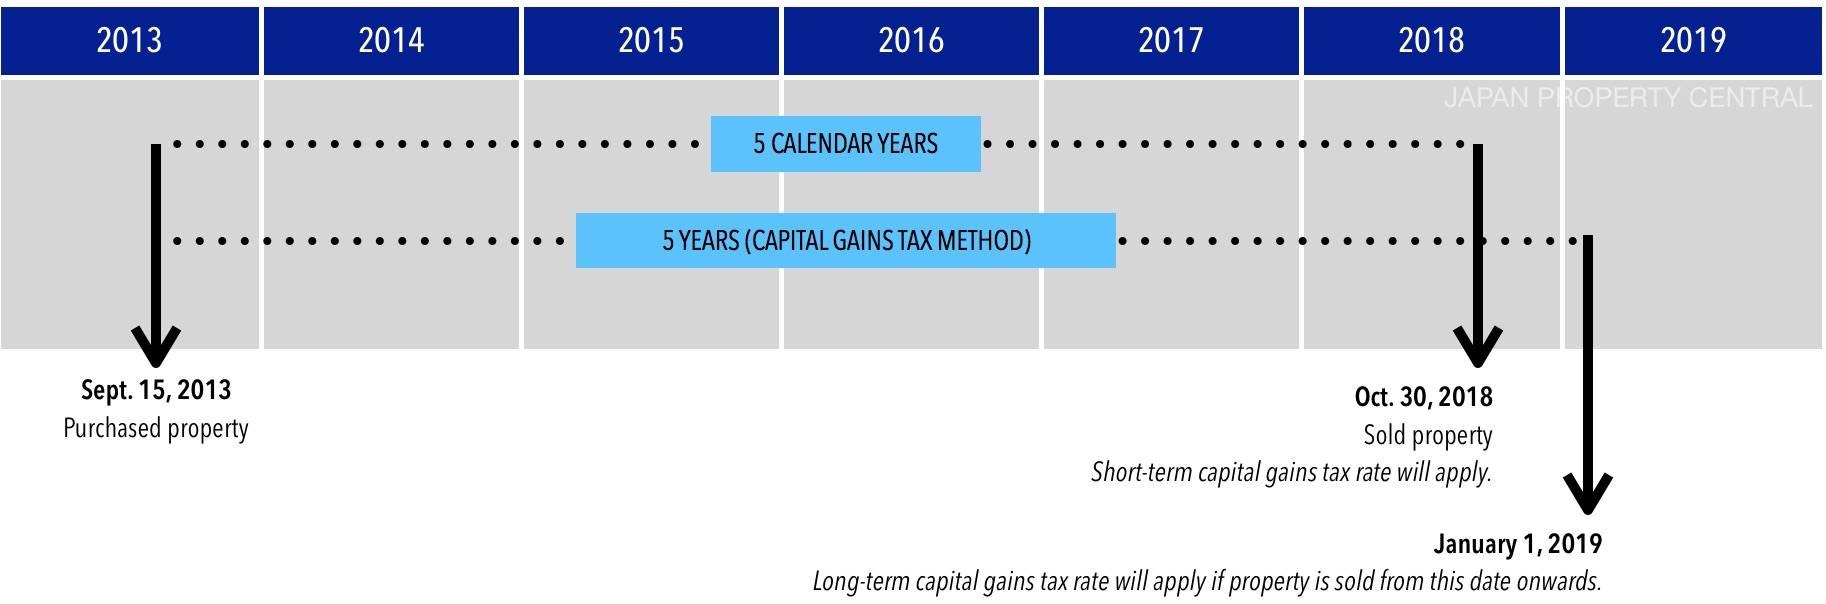 2. Maximize Capital Improvements